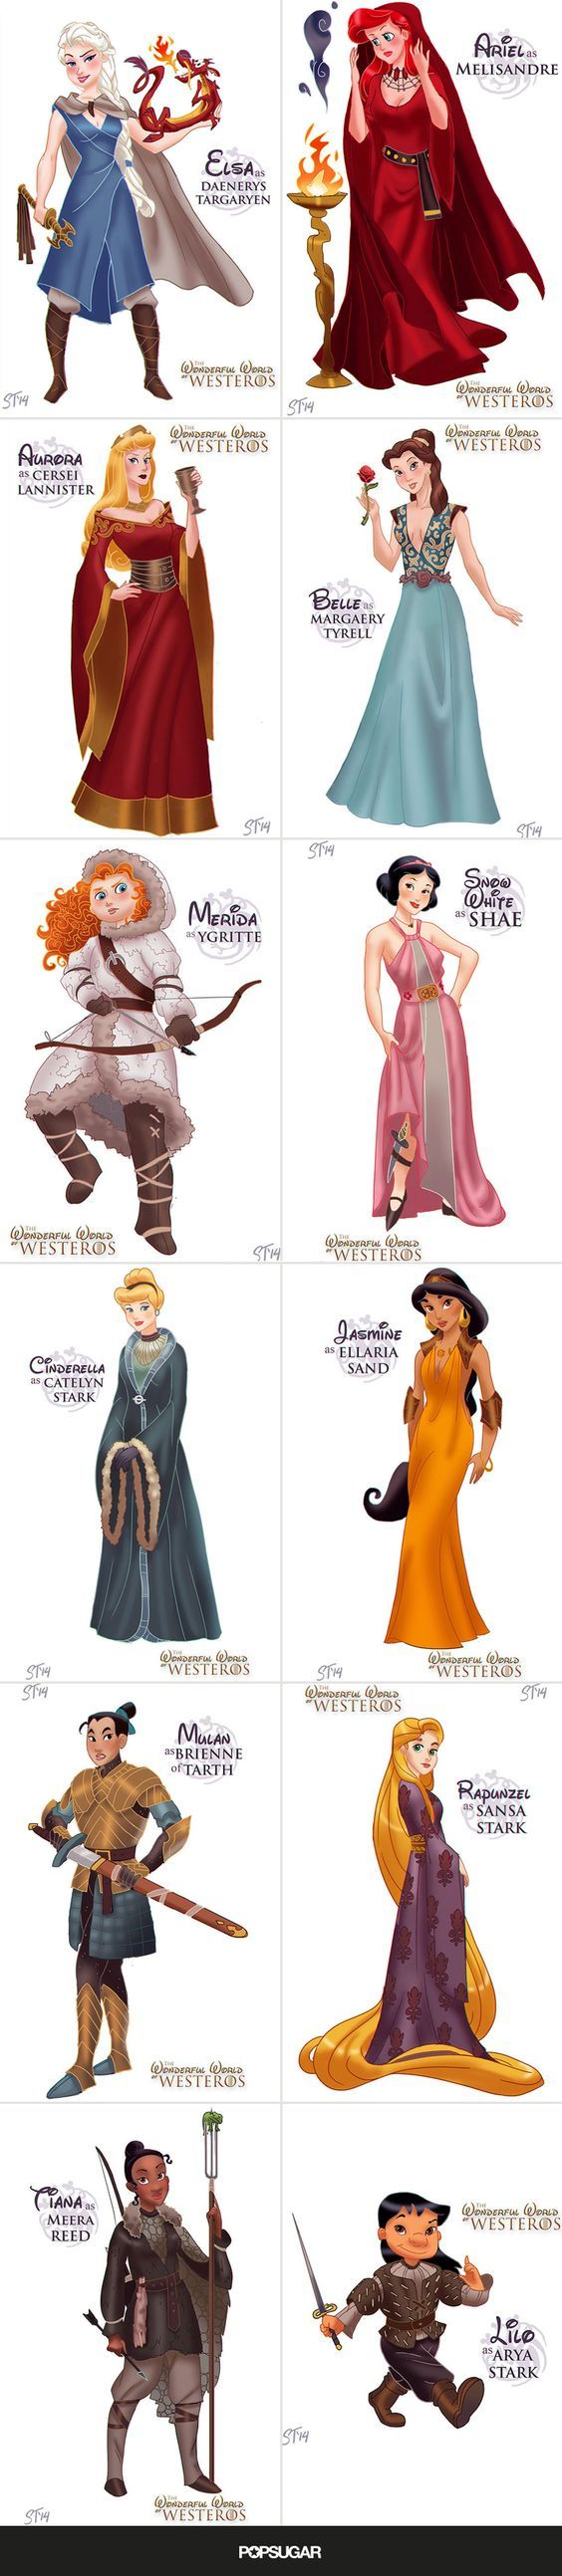 Disney Princesses as the Women of Game of Thrones: